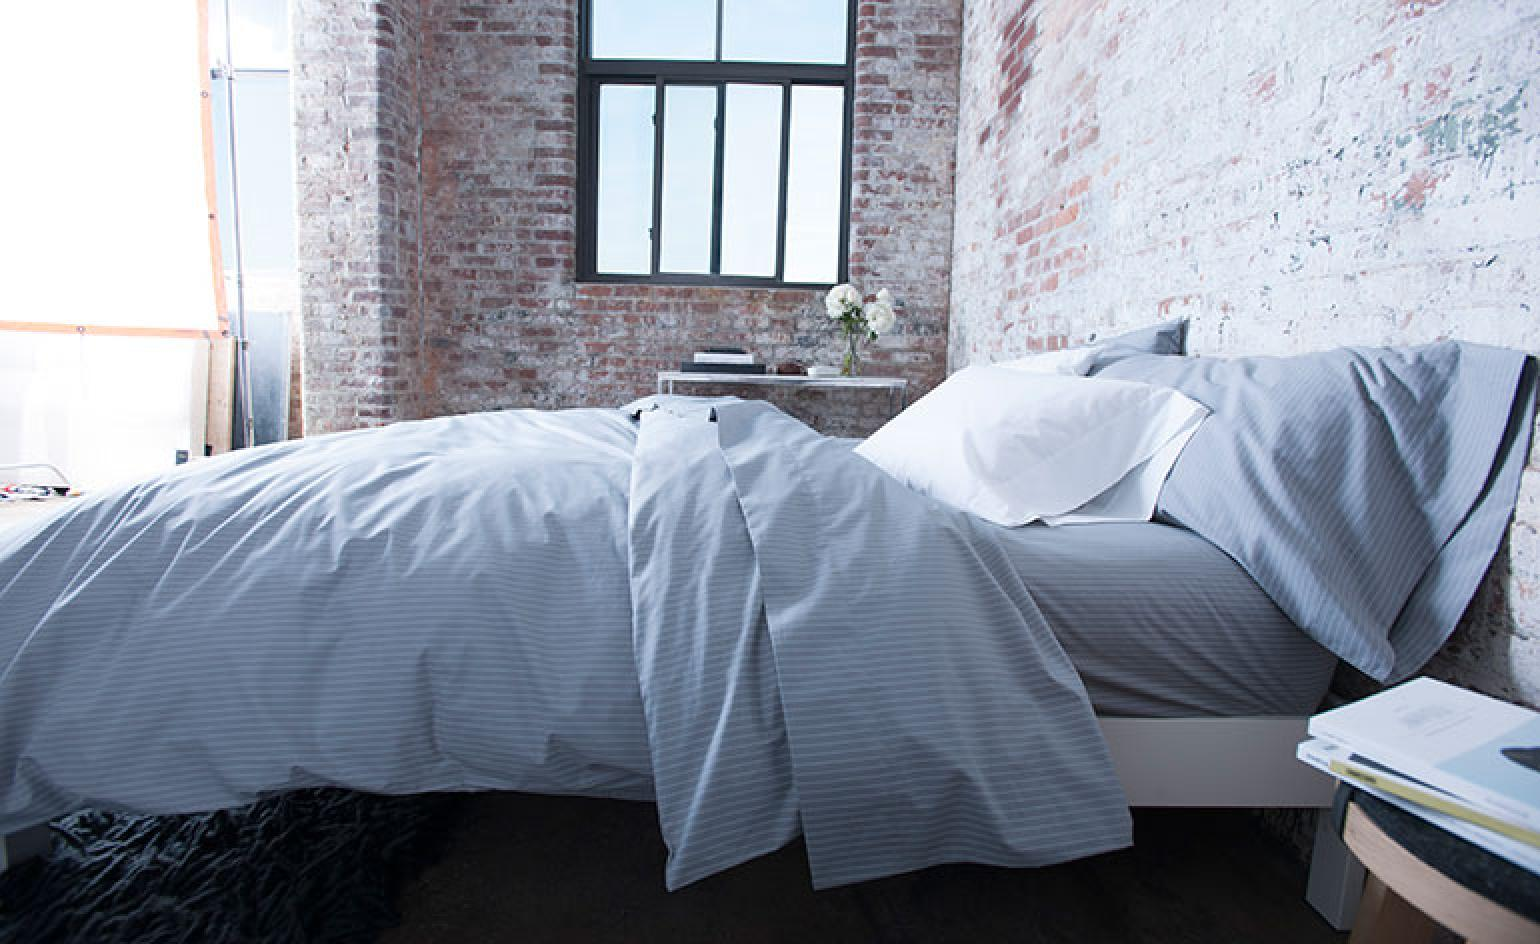 Brooklinen Reviews and Buying Guide by www.snoremagazine.com